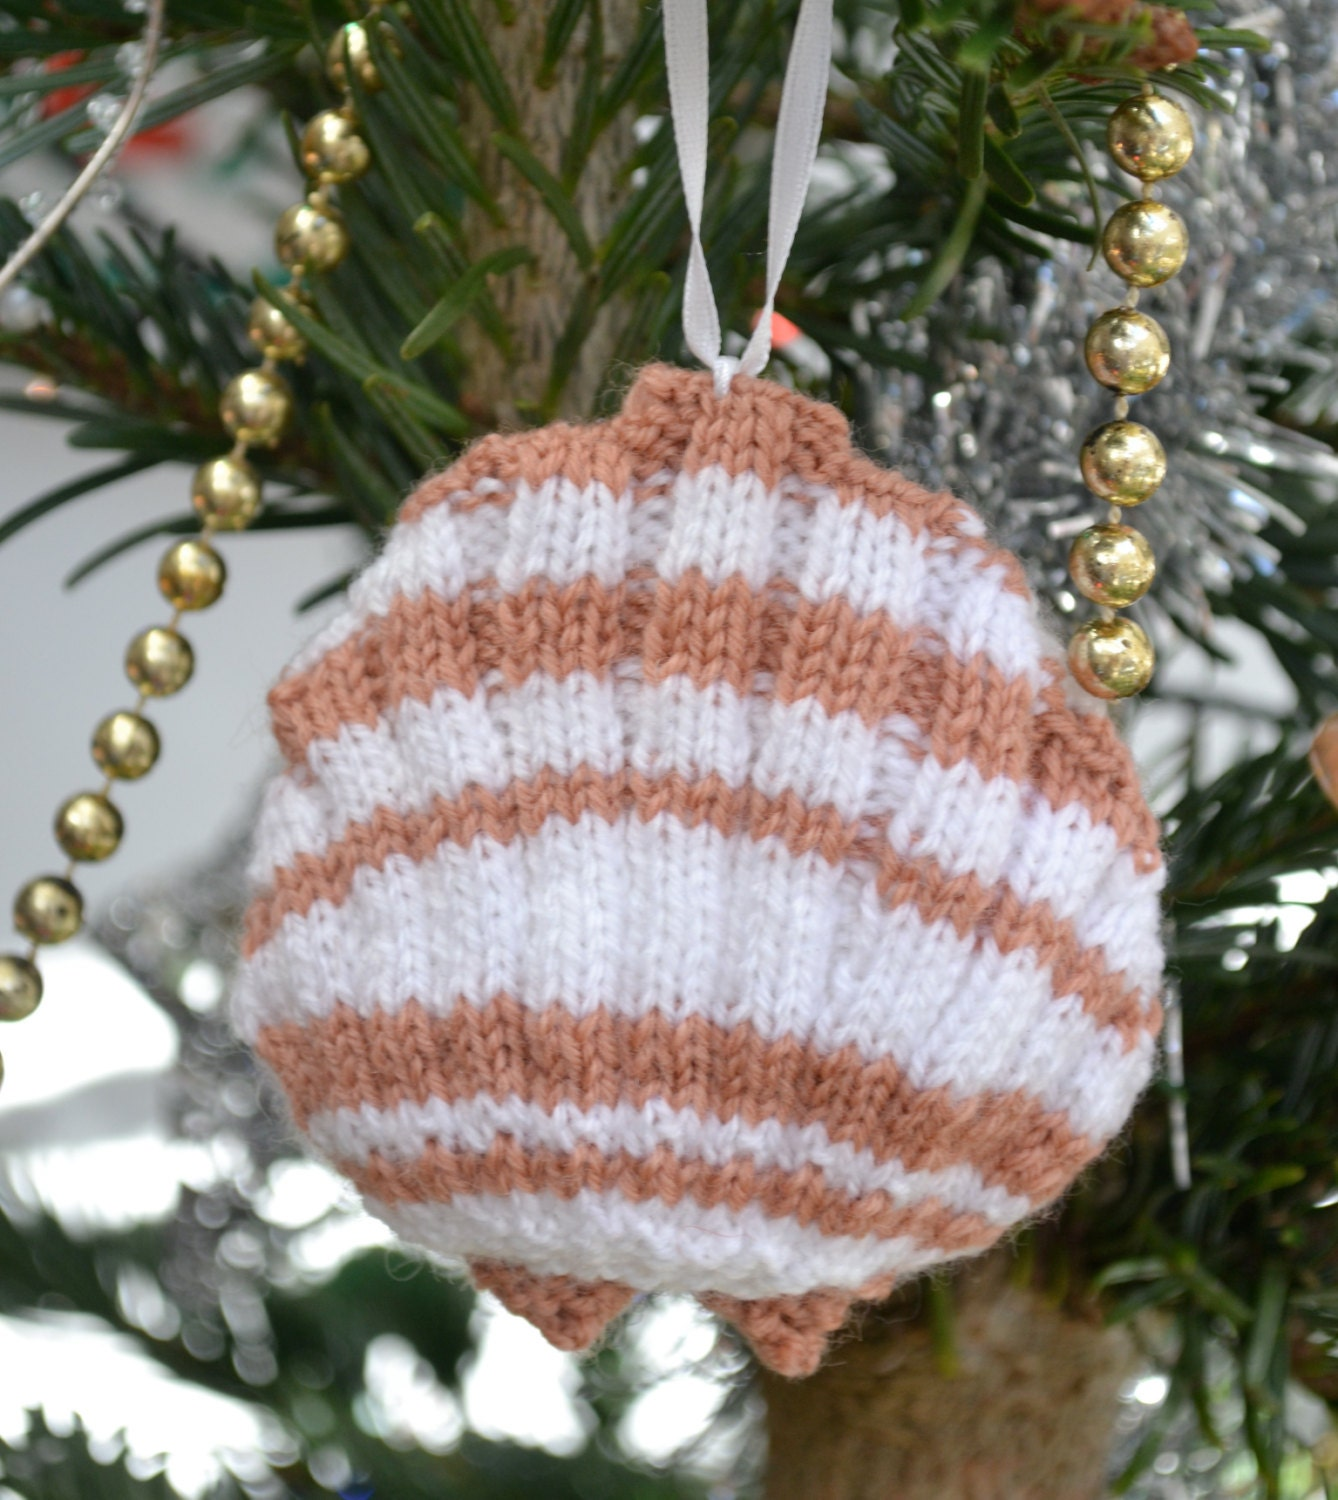 Scallop Knitting Pattern : Scallop Shell Knitting Pattern by GinxCraft on Etsy